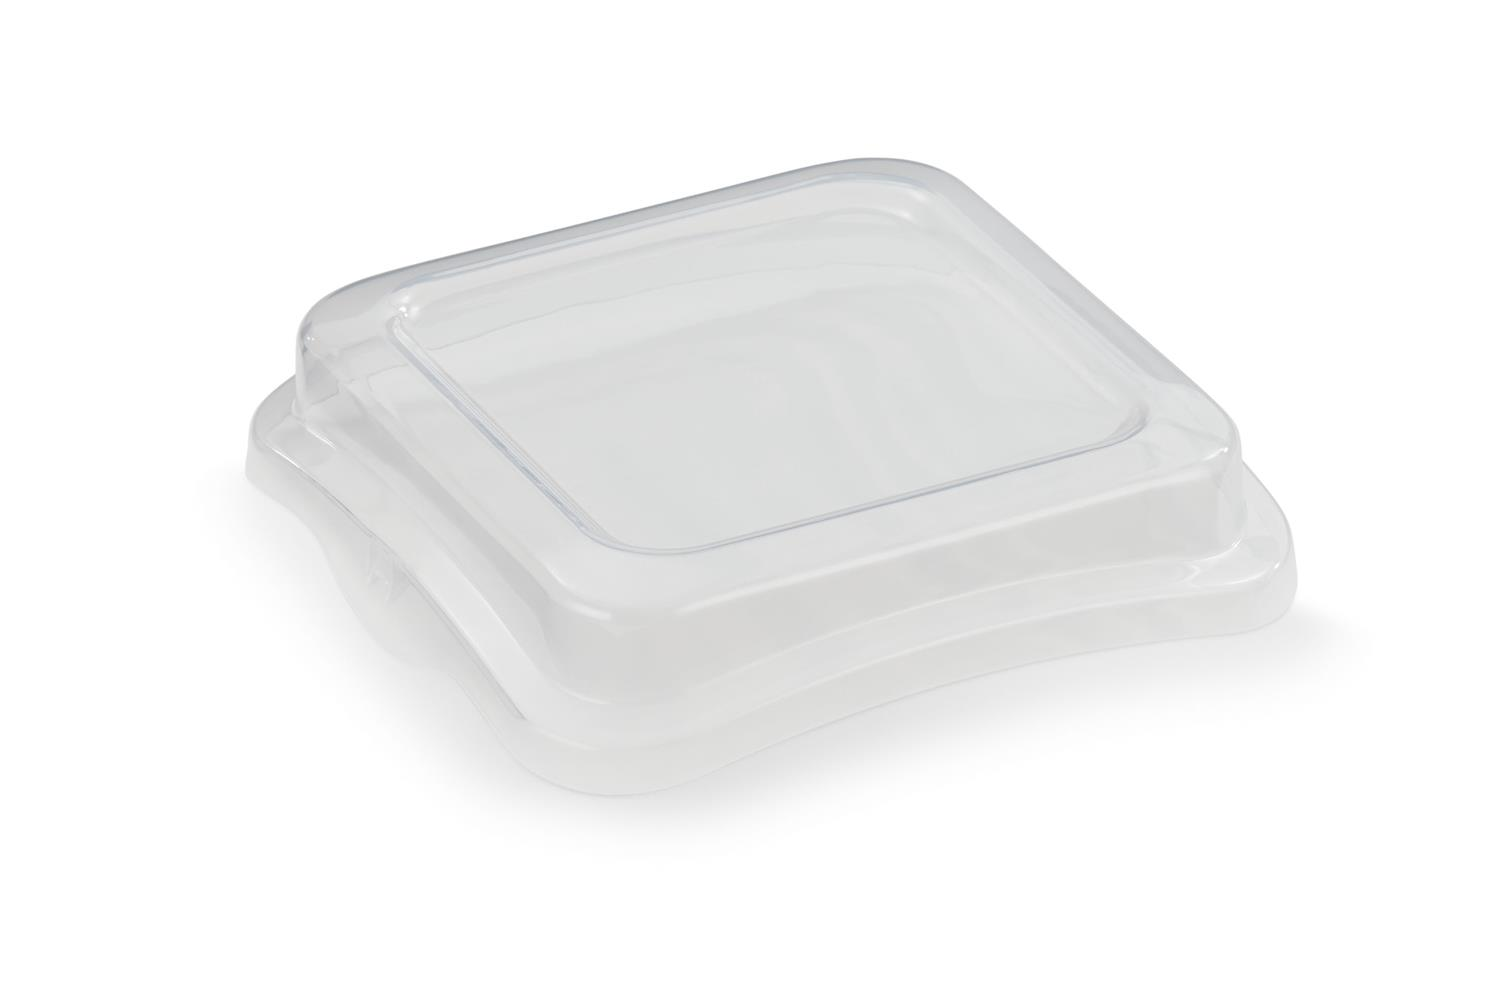 Vollrath 40030 Clear Plastic lid, fits 40003